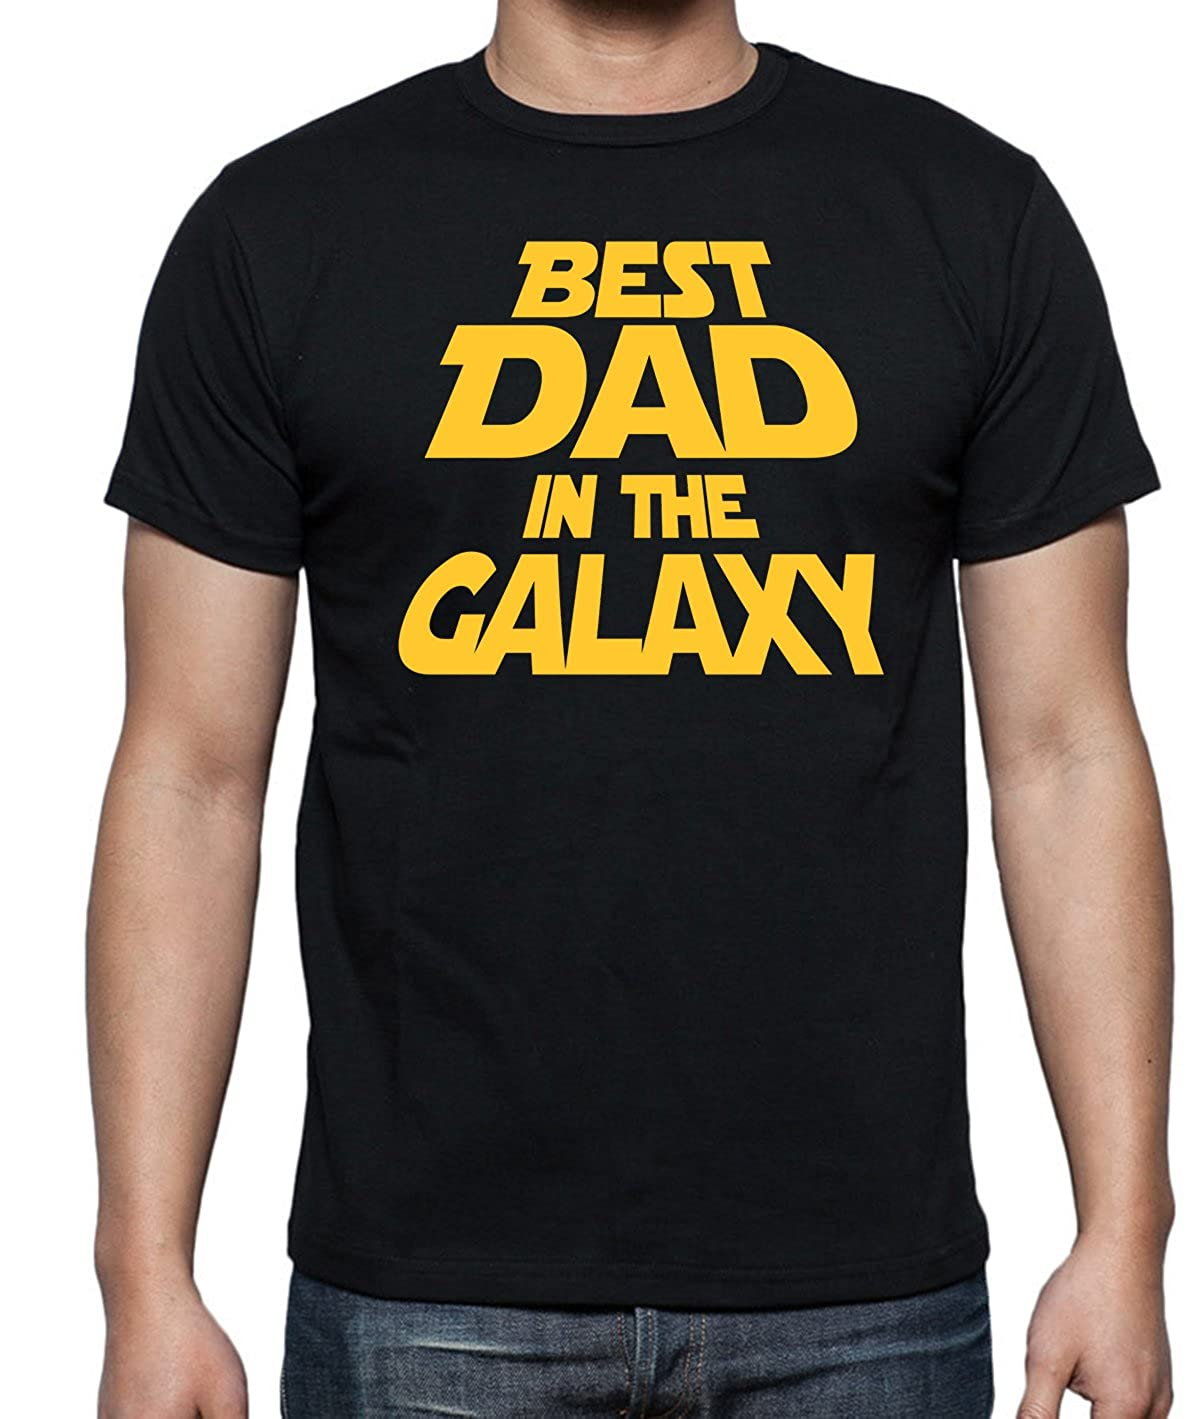 Funchious Best Dad in The Galaxy Funny Fathers Day Gift for Dad Novelty Men/'s Shirt